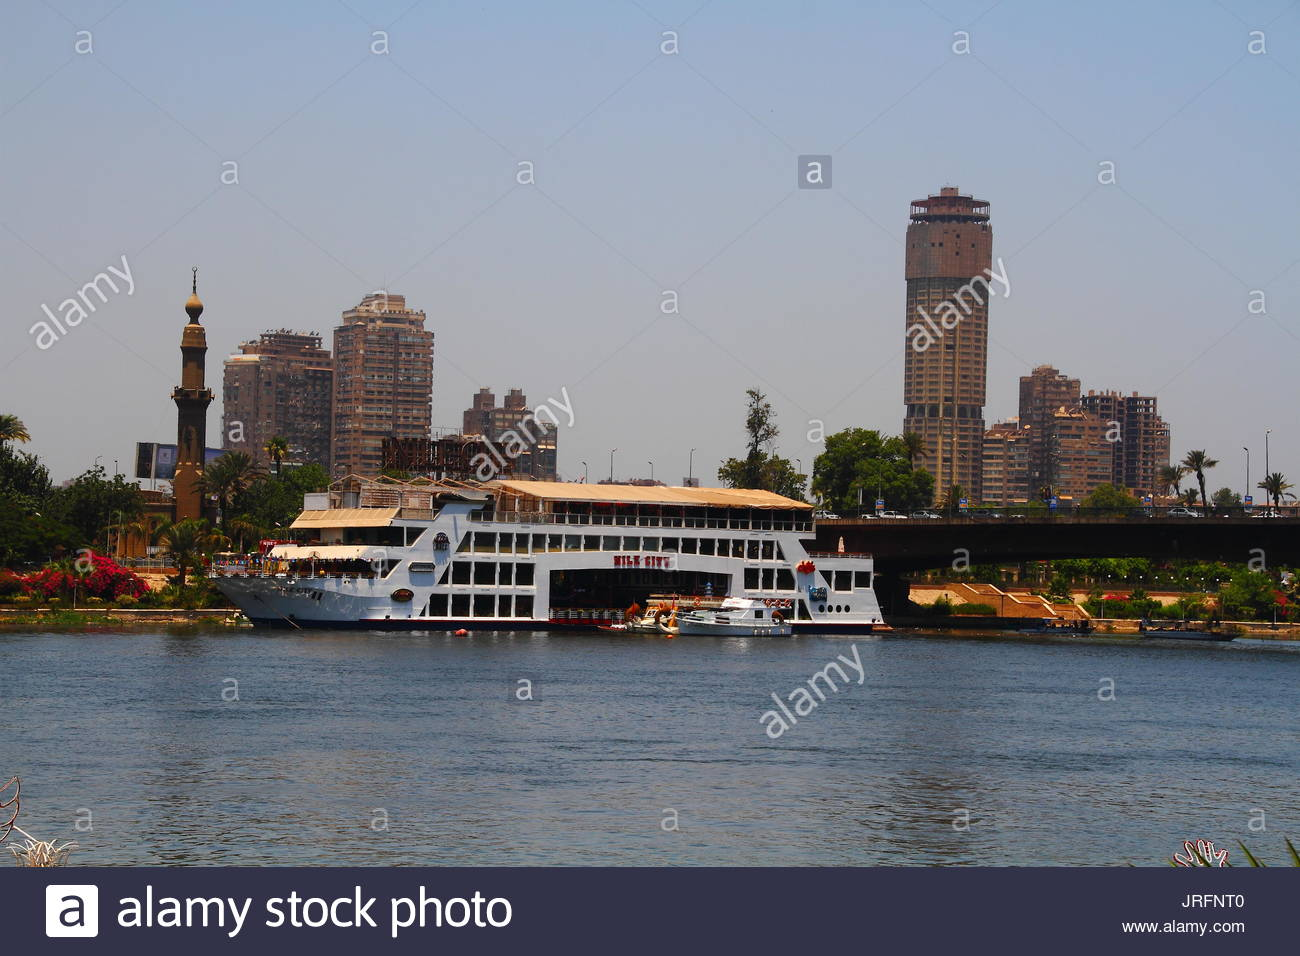 Egypt - Cairo - The Nile - Stock Image